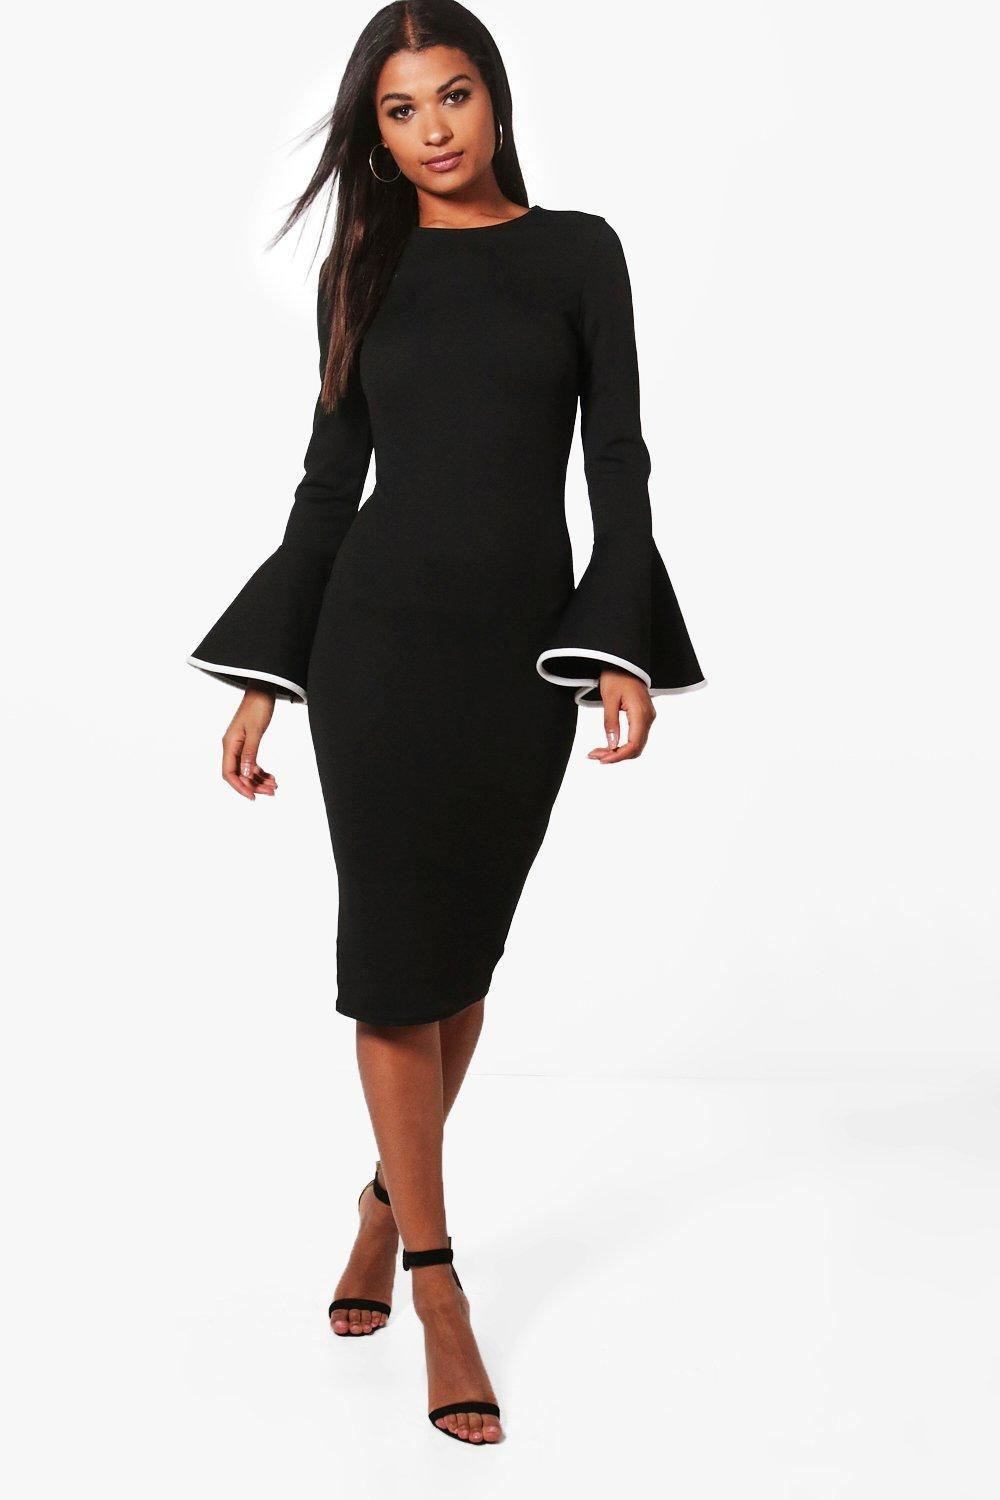 a0ab370f83 Boohoo Contrast Flared Sleeve Midi Dress in Black - Lyst